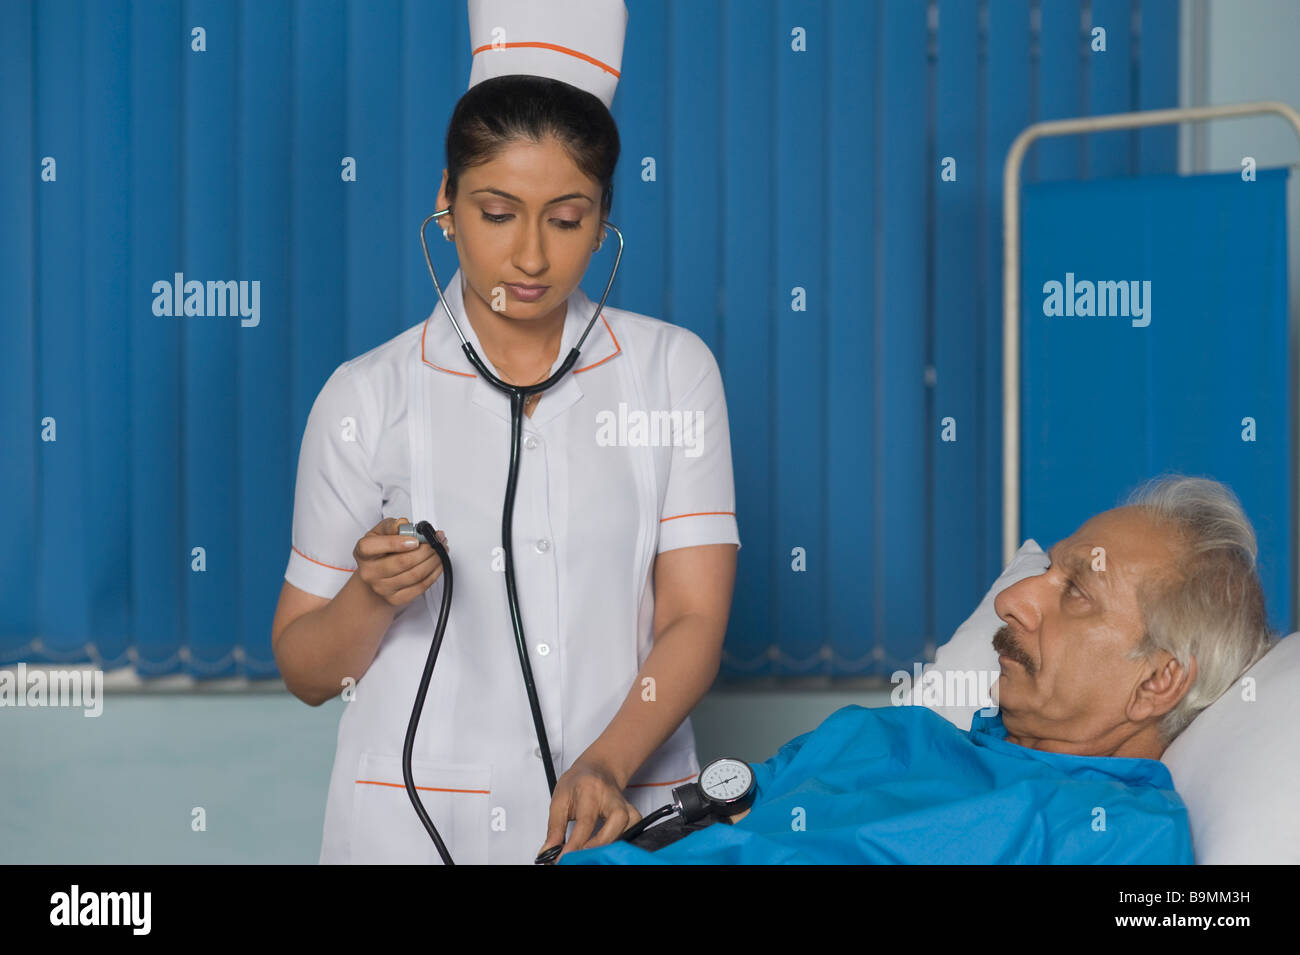 Female nurse checking a patient's blood pressure - Stock Image